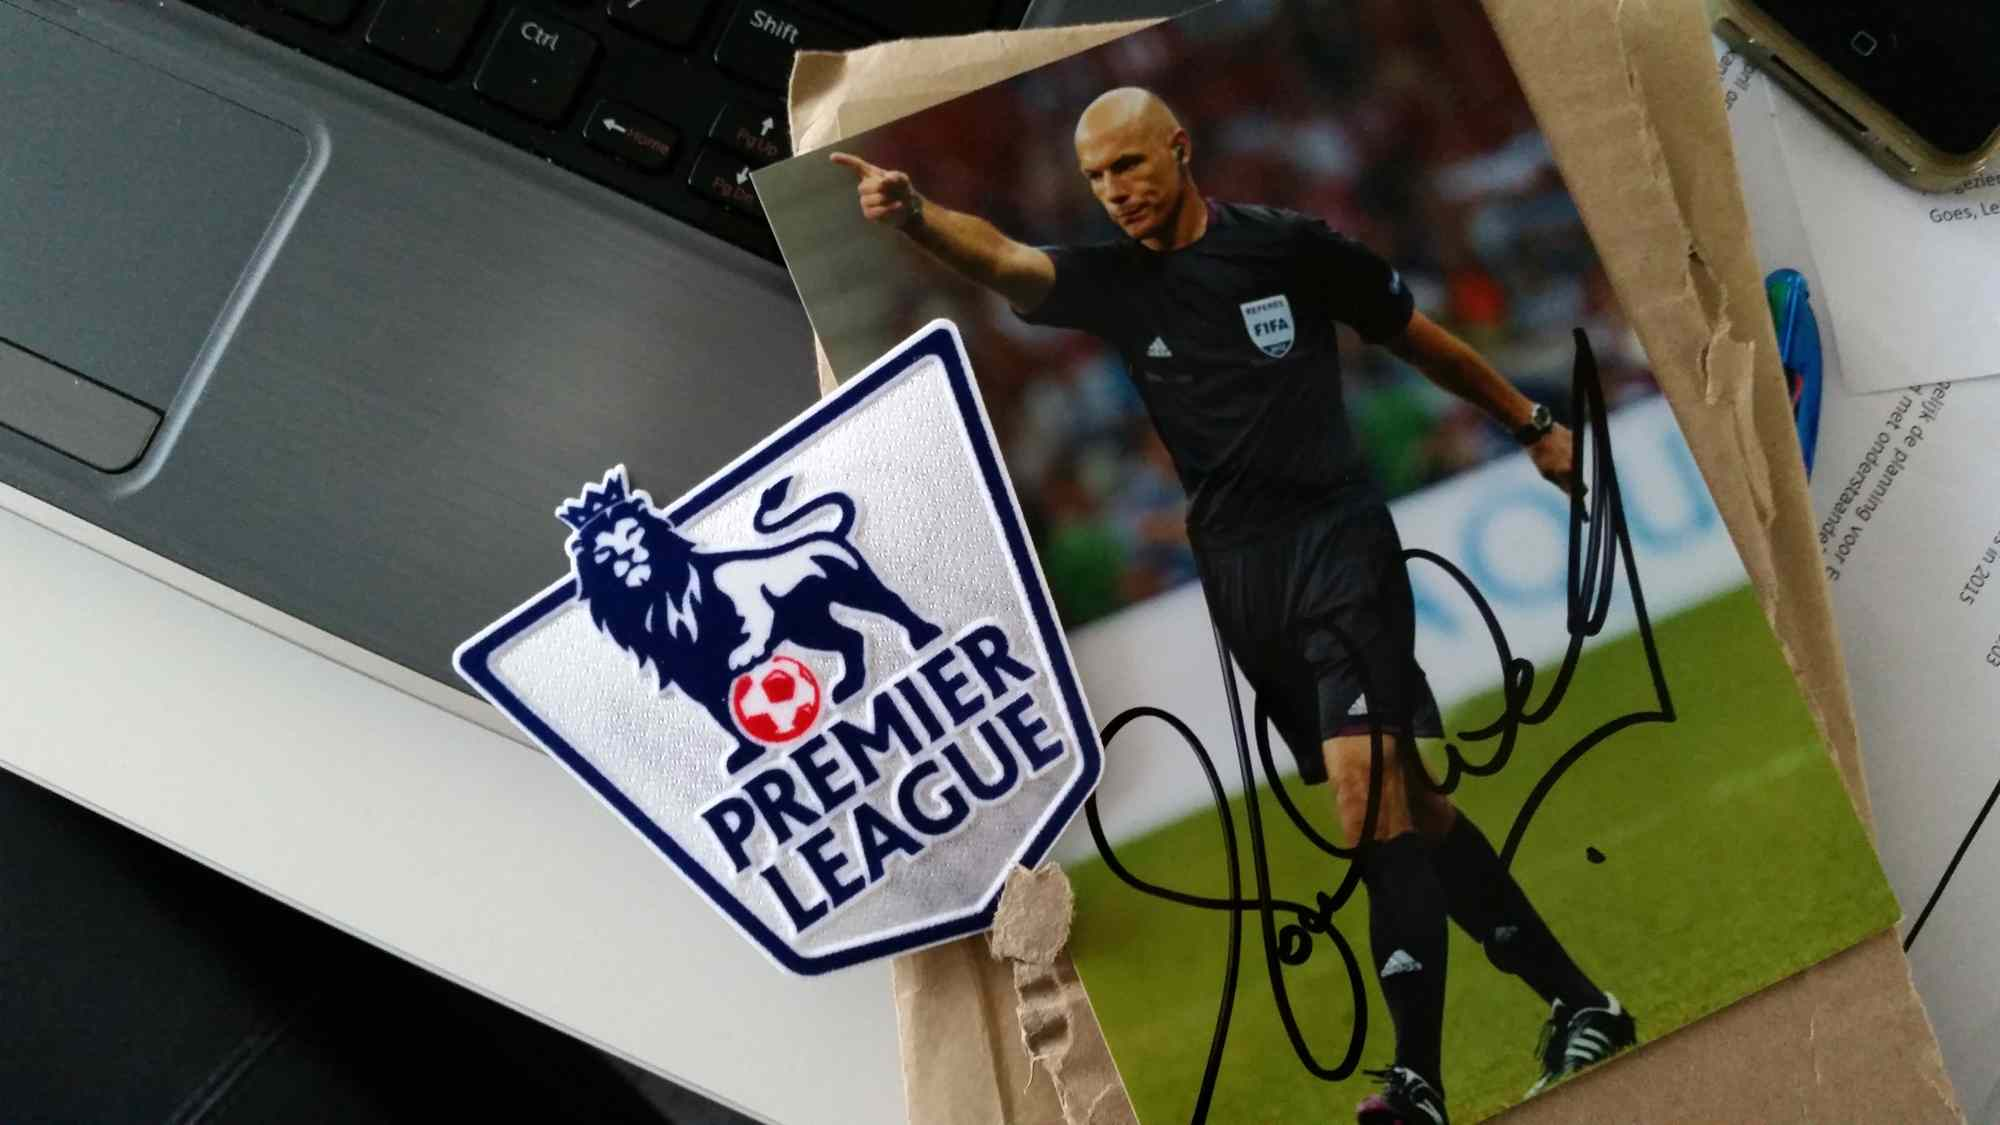 Premier League badge from Howard Webb